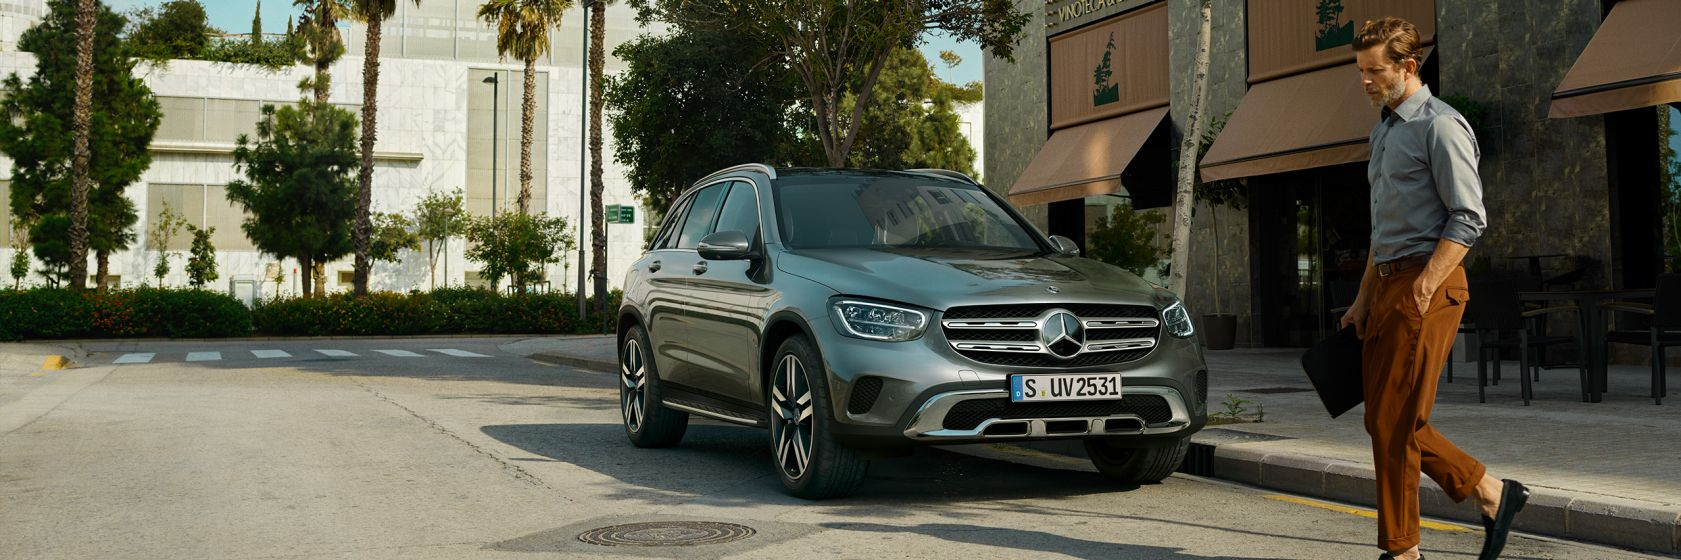 Ціна Mercedes-Benz GLC 2020